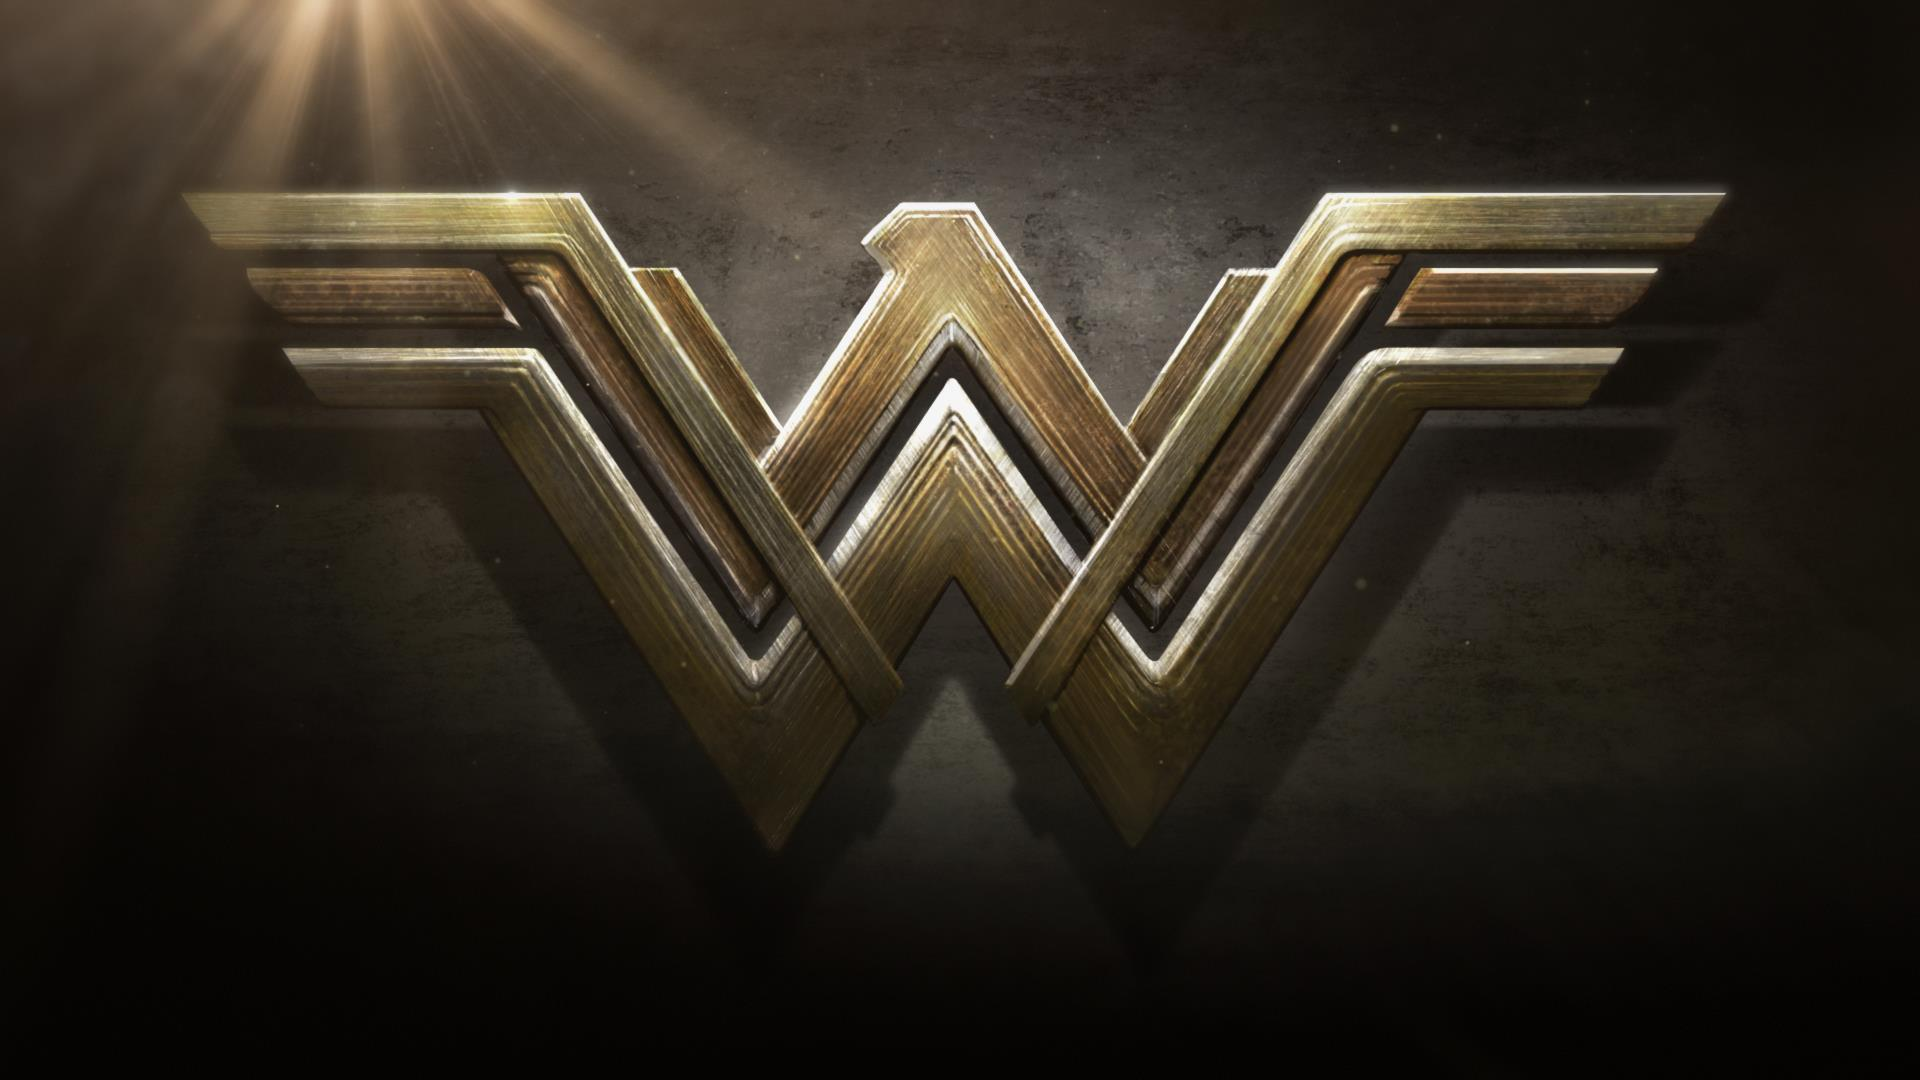 Wonder Woman Les Premi 232 Res Images Du Film Les Toiles